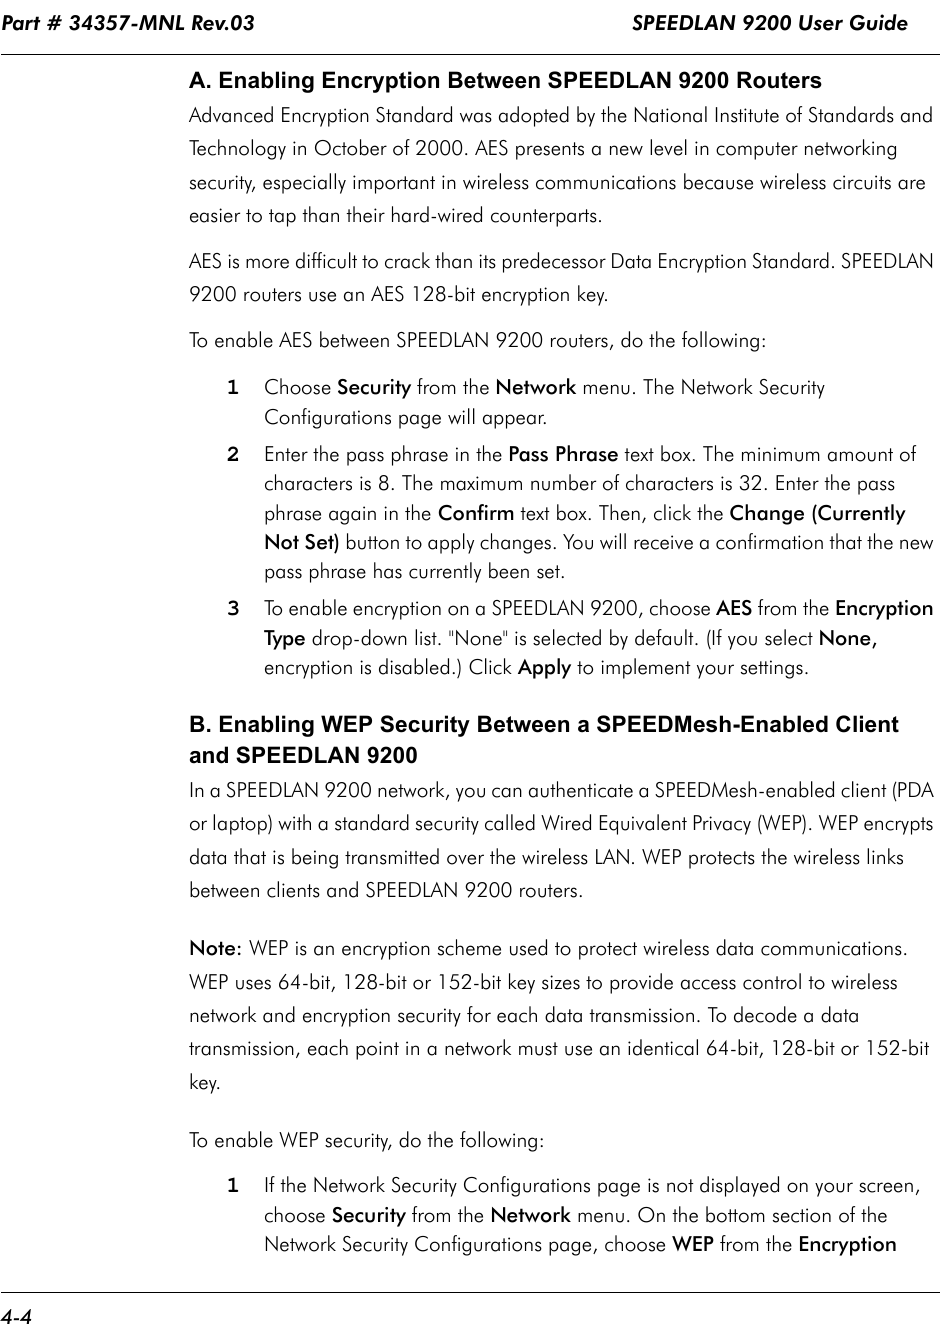 """Part # 34357-MNL Rev.03                                                             SPEEDLAN 9200 User Guide 4-4A. Enabling Encryption Between SPEEDLAN 9200 RoutersAdvanced Encryption Standard was adopted by the National Institute of Standards and Technology in October of 2000. AES presents a new level in computer networking security, especially important in wireless communications because wireless circuits are easier to tap than their hard-wired counterparts.   AES is more difficult to crack than its predecessor Data Encryption Standard. SPEEDLAN 9200 routers use an AES 128-bit encryption key.To enable AES between SPEEDLAN 9200 routers, do the following:1Choose Security from the Network menu. The Network Security Configurations page will appear. 2Enter the pass phrase in the Pass Phrase text box. The minimum amount of characters is 8. The maximum number of characters is 32. Enter the pass phrase again in the Confirm text box. Then, click the Change (Currently Not Set) button to apply changes. You will receive a confirmation that the new pass phrase has currently been set. 3To enable encryption on a SPEEDLAN 9200, choose AES from the Encryption Type drop-down list. """"None"""" is selected by default. (If you select None, encryption is disabled.) Click Apply to implement your settings. B. Enabling WEP Security Between a SPEEDMesh-Enabled Client and SPEEDLAN 9200In a SPEEDLAN 9200 network, you can authenticate a SPEEDMesh-enabled client (PDA or laptop) with a standard security called Wired Equivalent Privacy (WEP). WEP encrypts data that is being transmitted over the wireless LAN. WEP protects the wireless links between clients and SPEEDLAN 9200 routers. Note: WEP is an encryption scheme used to protect wireless data communications. WEP uses 64-bit, 128-bit or 152-bit key sizes to provide access control to wireless network and encryption security for each data transmission. To decode a data transmission, each point in a network must use an identical 64-bit, 128-bit or 152-"""